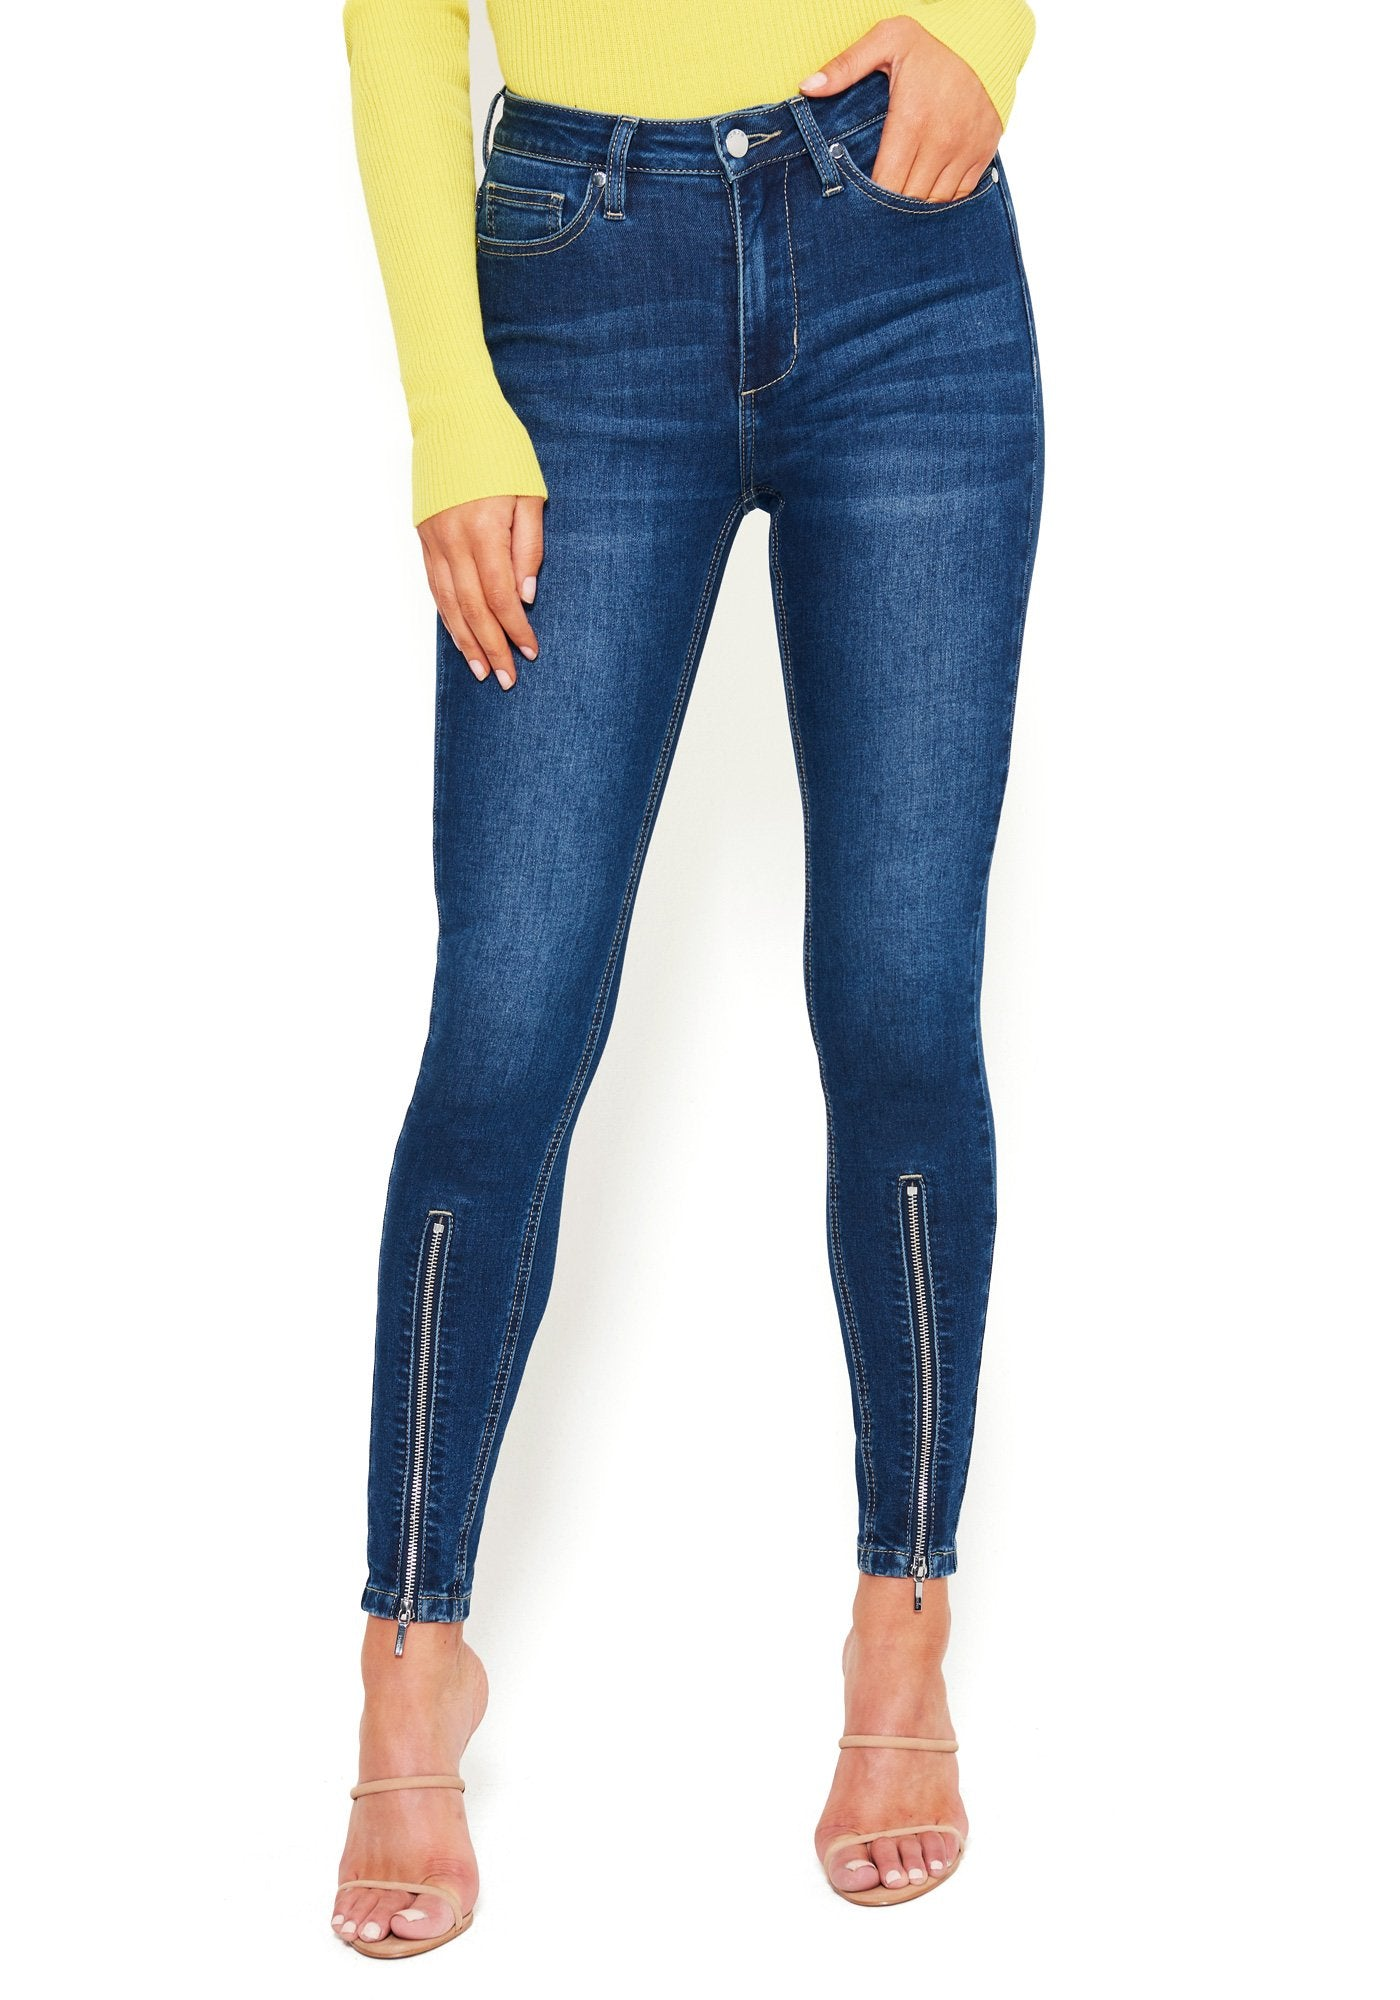 Bebe Women's Zipper Detail Skinny Jeans Denim, Size 25 in MED INDIGO WASH Cotton/Spandex